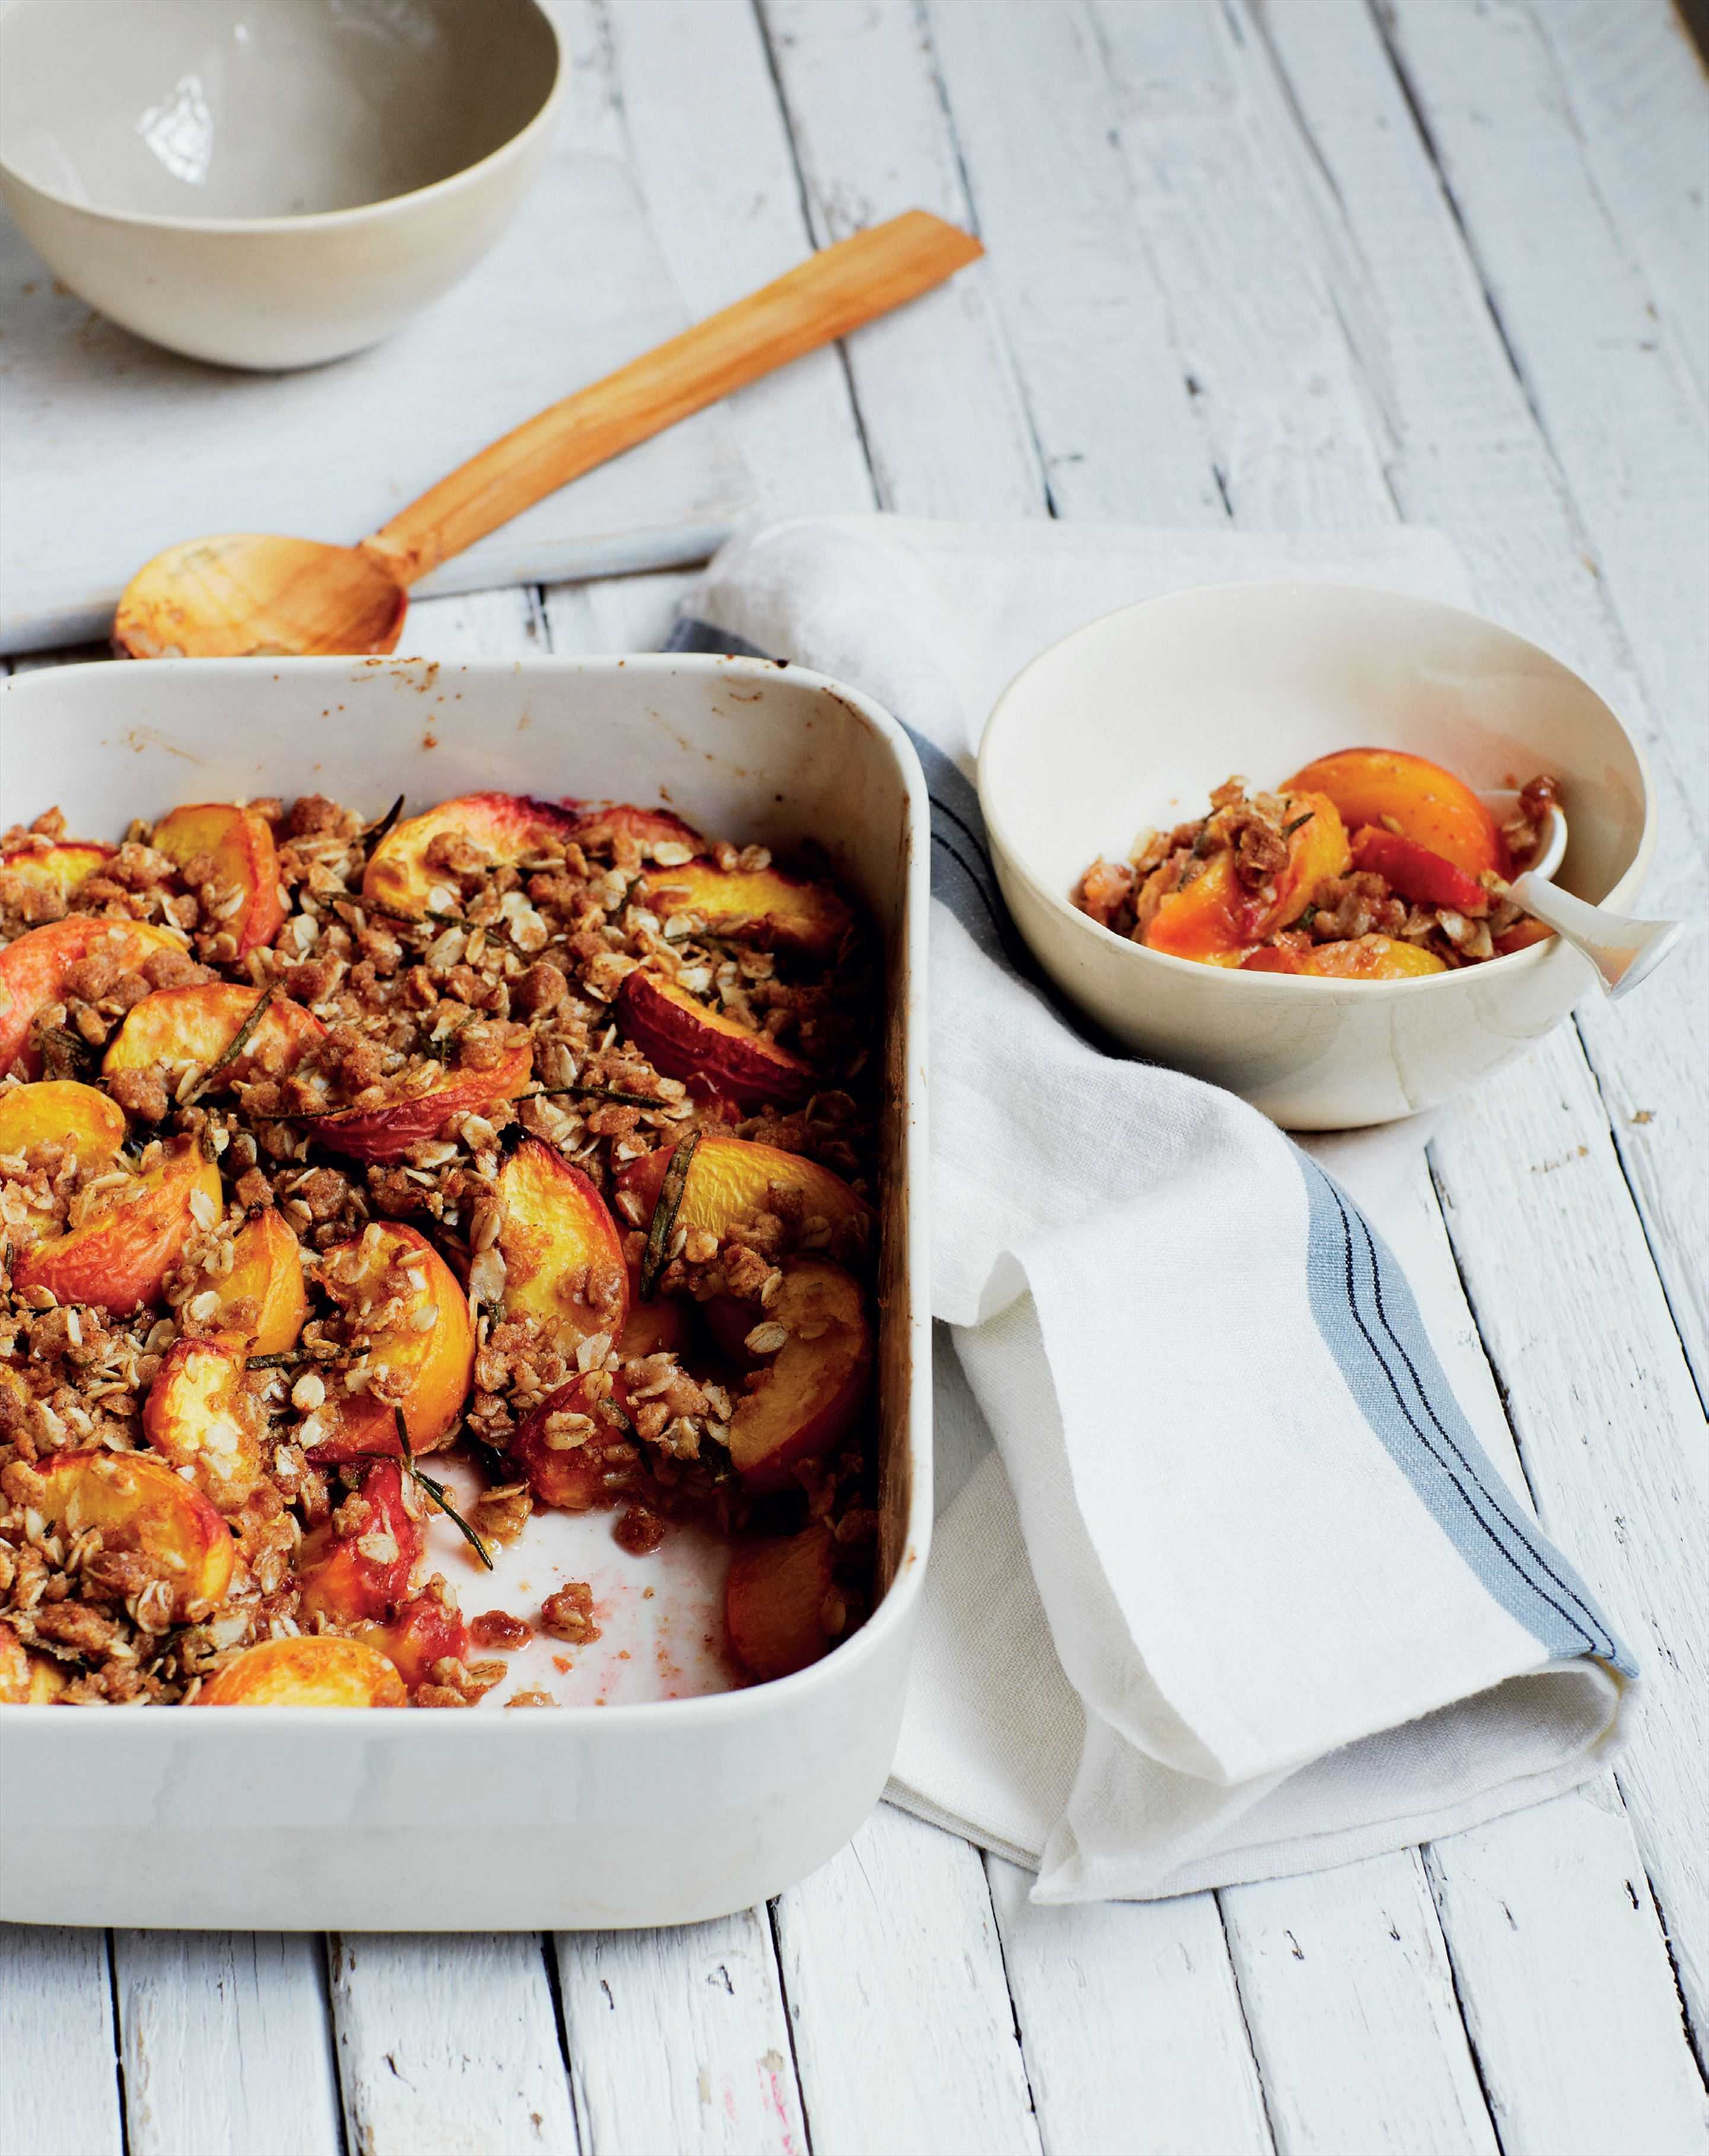 Peach and rosemary crumble